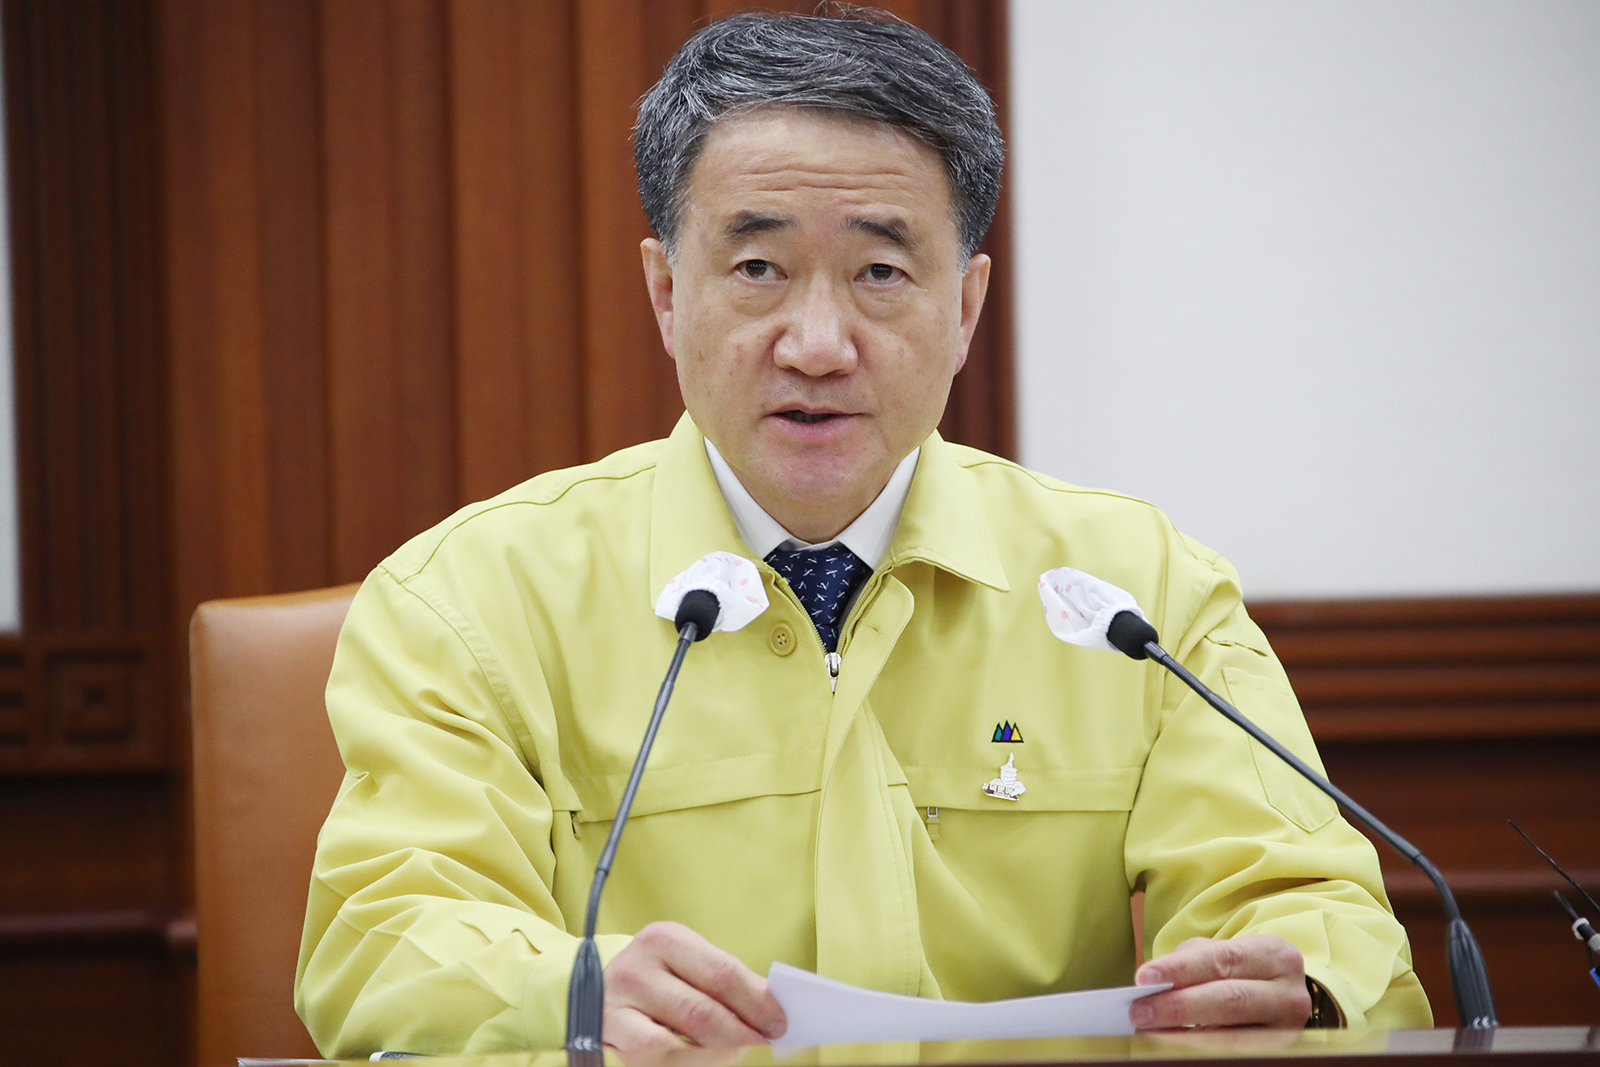 Health Minister Park Neung-hoo speaks during a meeting of the Central Disease Control Headquarters at the government complex in Seoul on July 20, to discuss measures to prevent the spread of Covid-19.